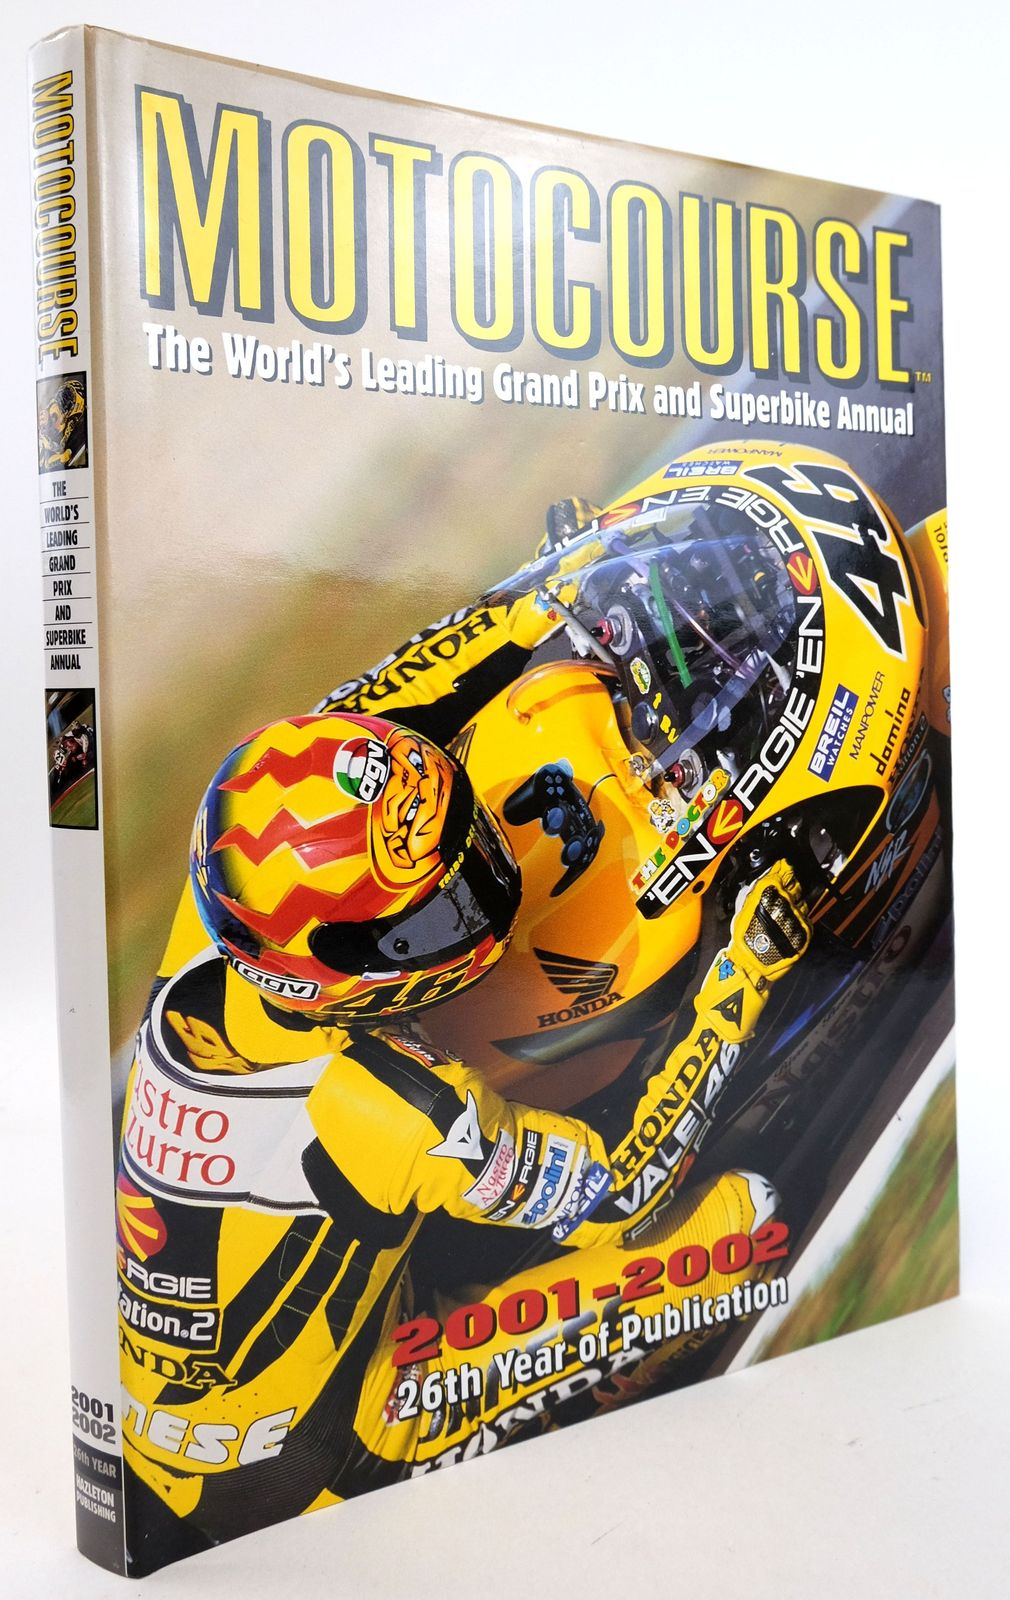 Photo of MOTOCOURSE 2001-2002 published by Hazleton Publishing (STOCK CODE: 1819875)  for sale by Stella & Rose's Books